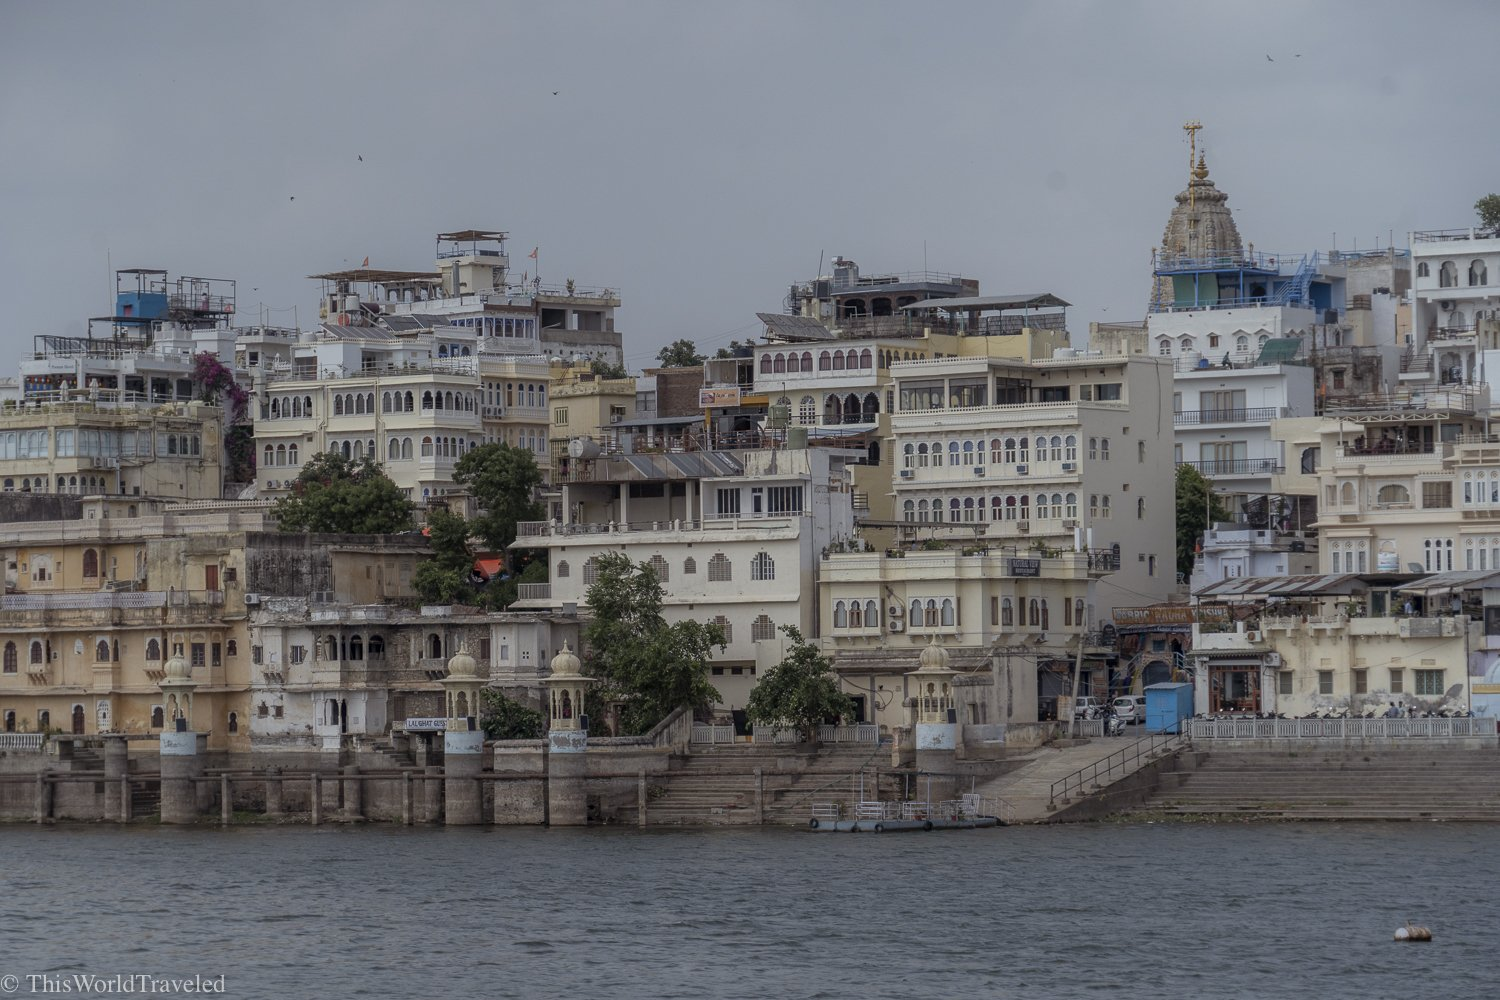 Udaipur: A Complete Guide to India's City of Lakes